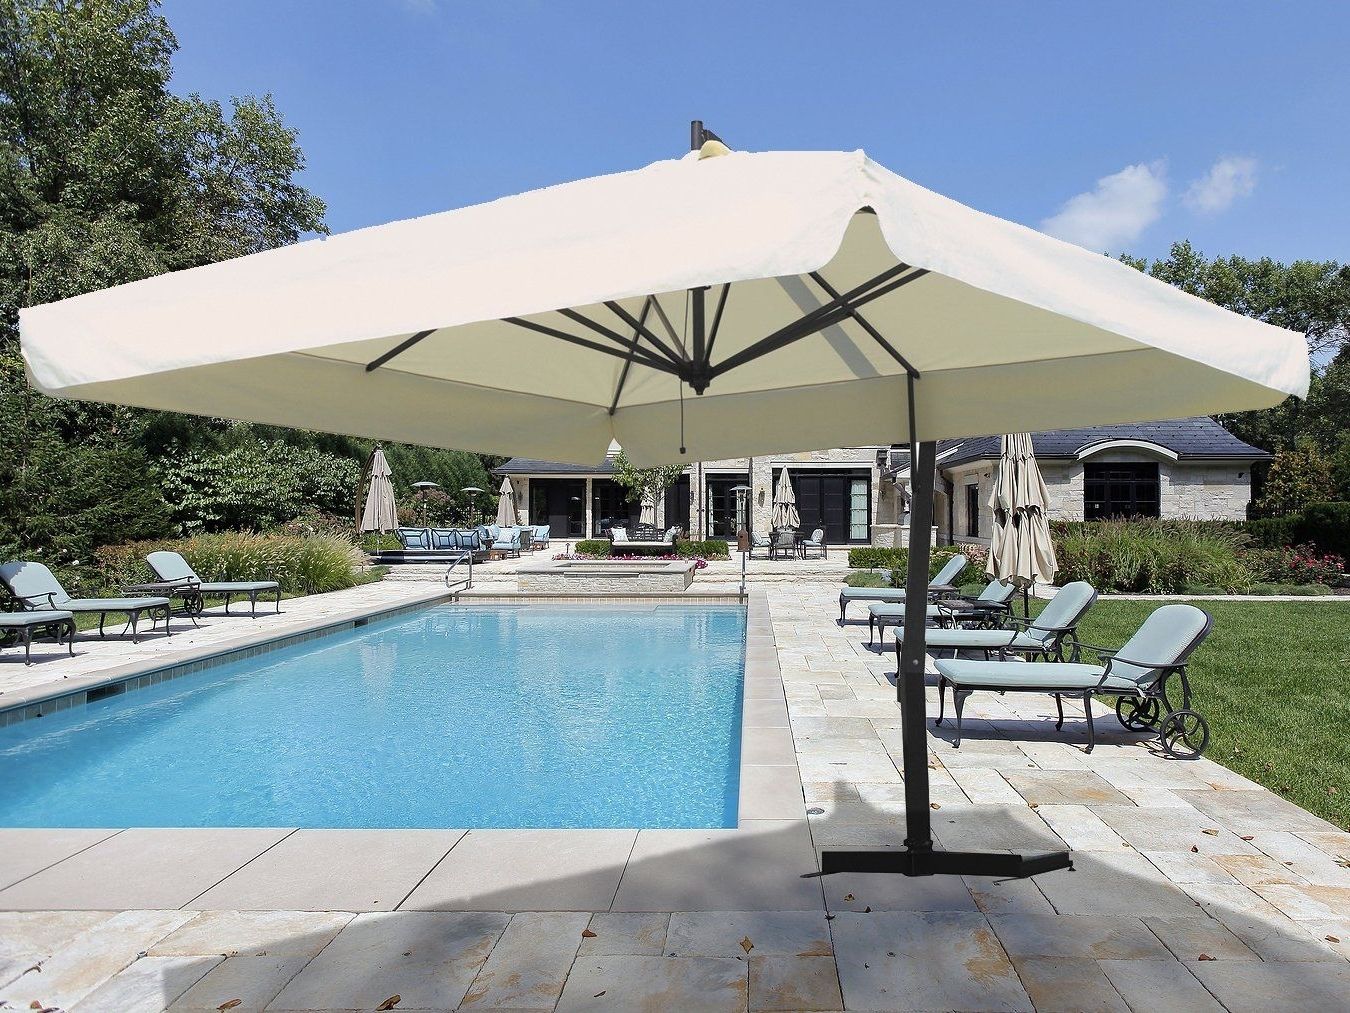 Pool With Regard To Trendy Cantilever Patio Umbrellas (View 12 of 20)